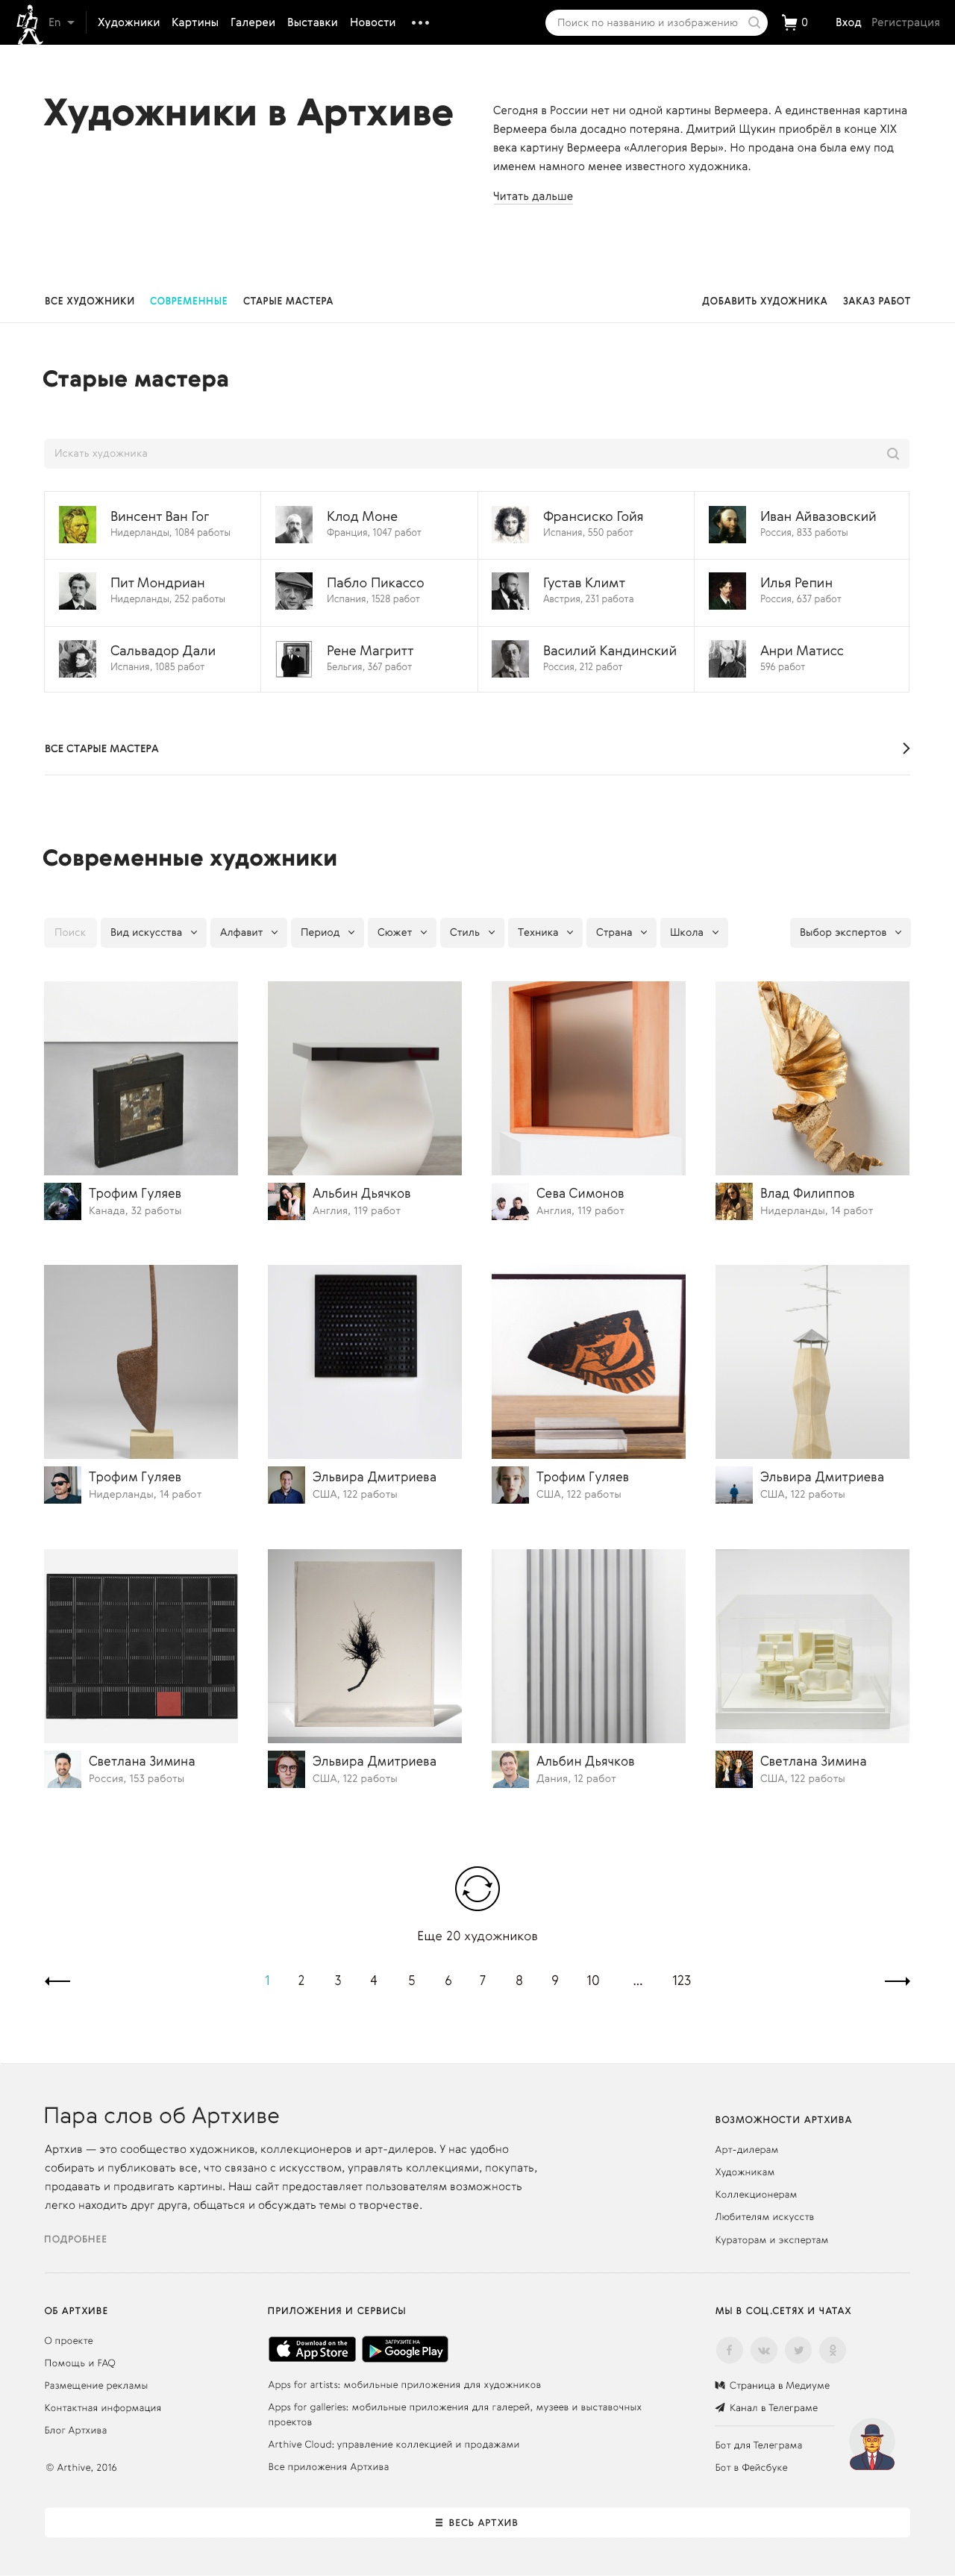 02.0_listing_artists_all